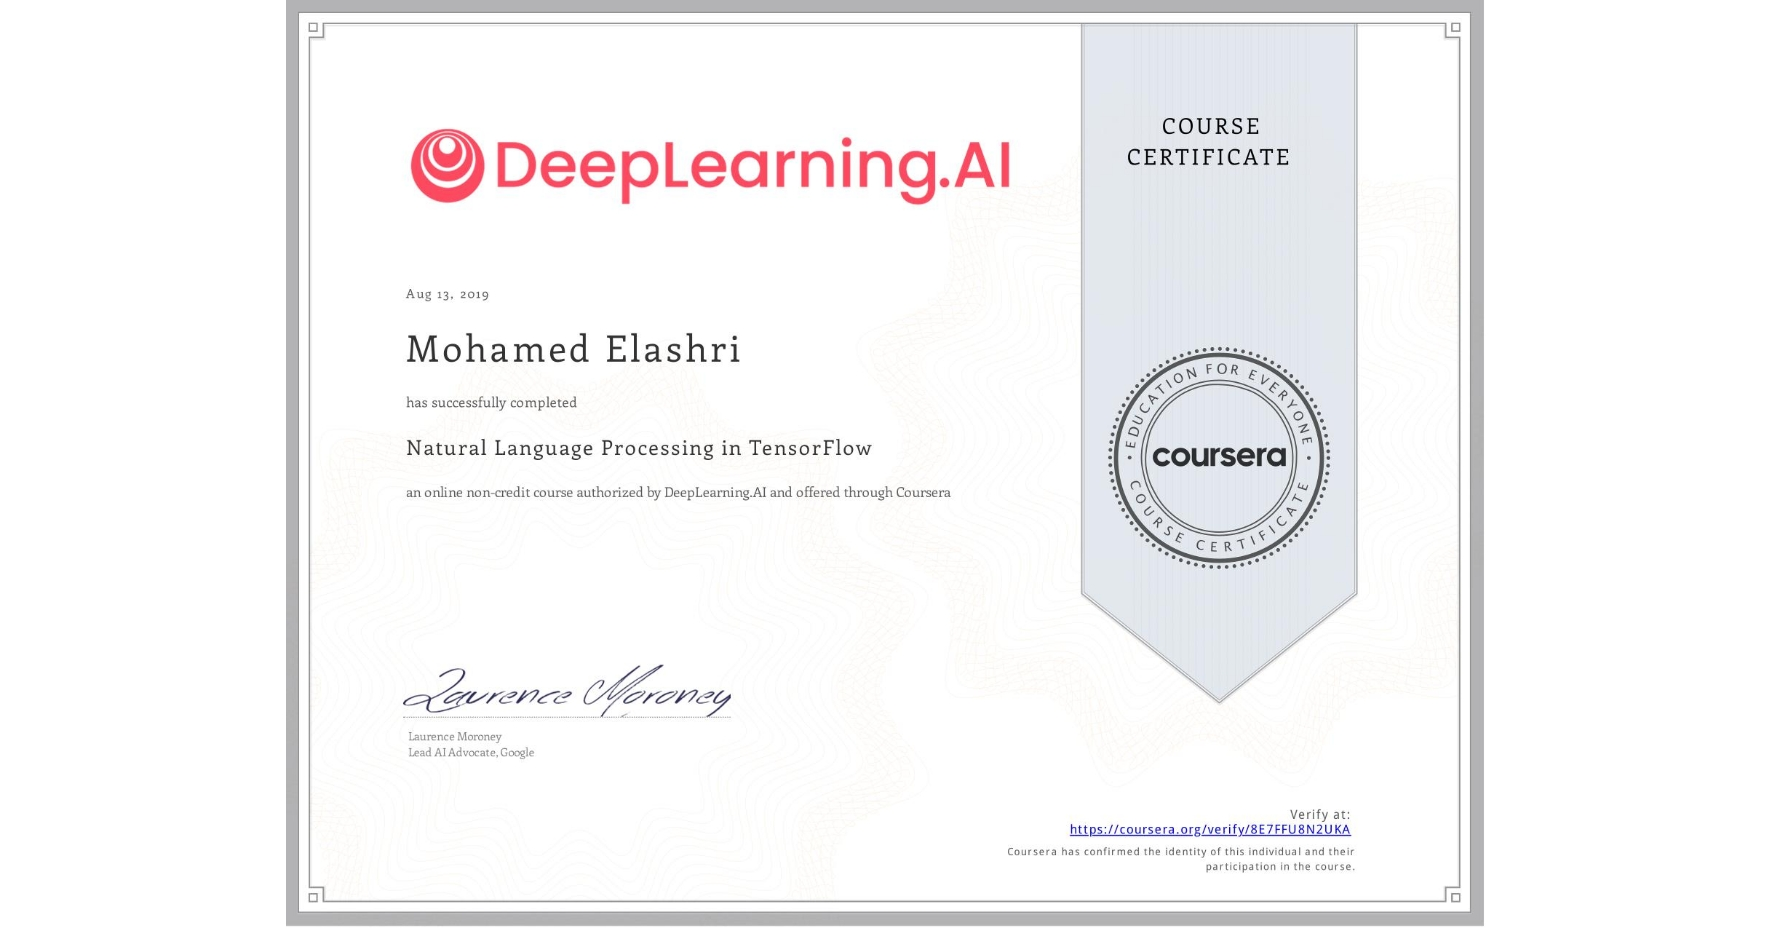 View certificate for Mohamed Elashri, Natural Language Processing in TensorFlow, an online non-credit course authorized by DeepLearning.AI and offered through Coursera